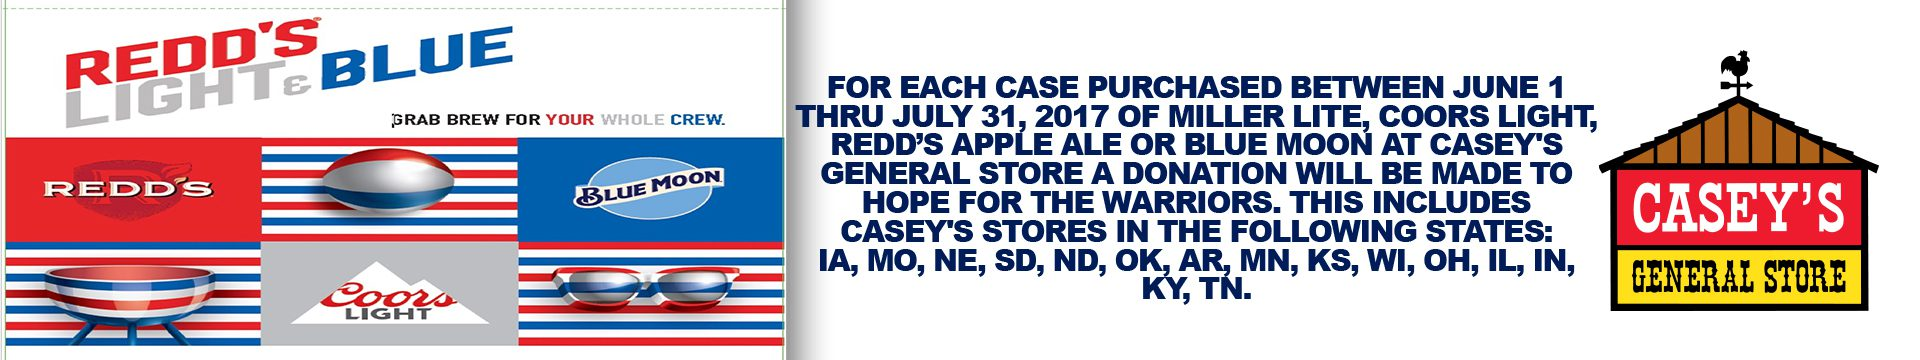 MillerCoors Promotion Casey's